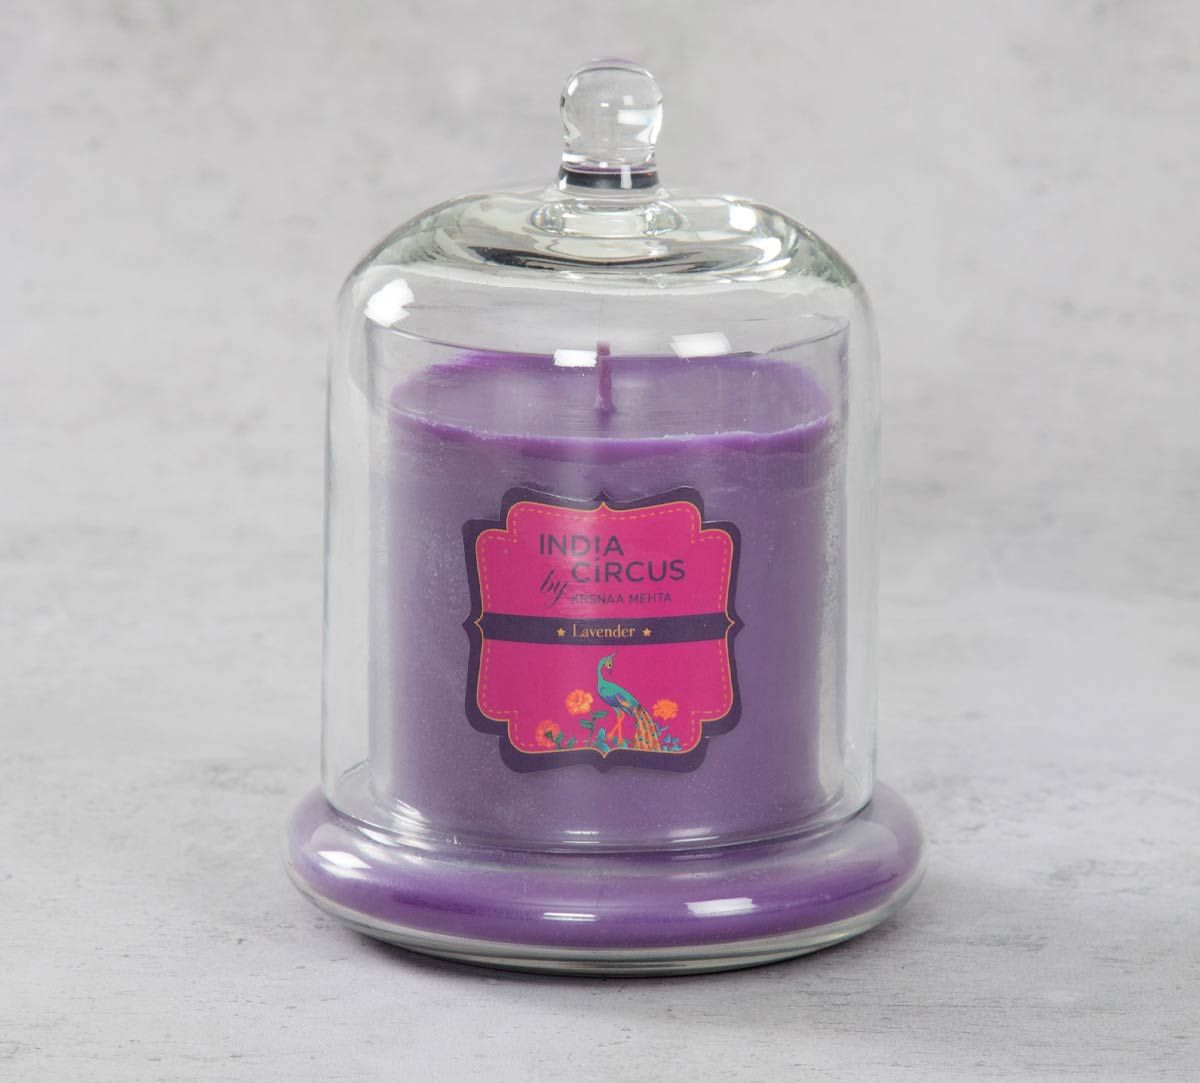 India Circus Lavender Glass Jar Scented Candle